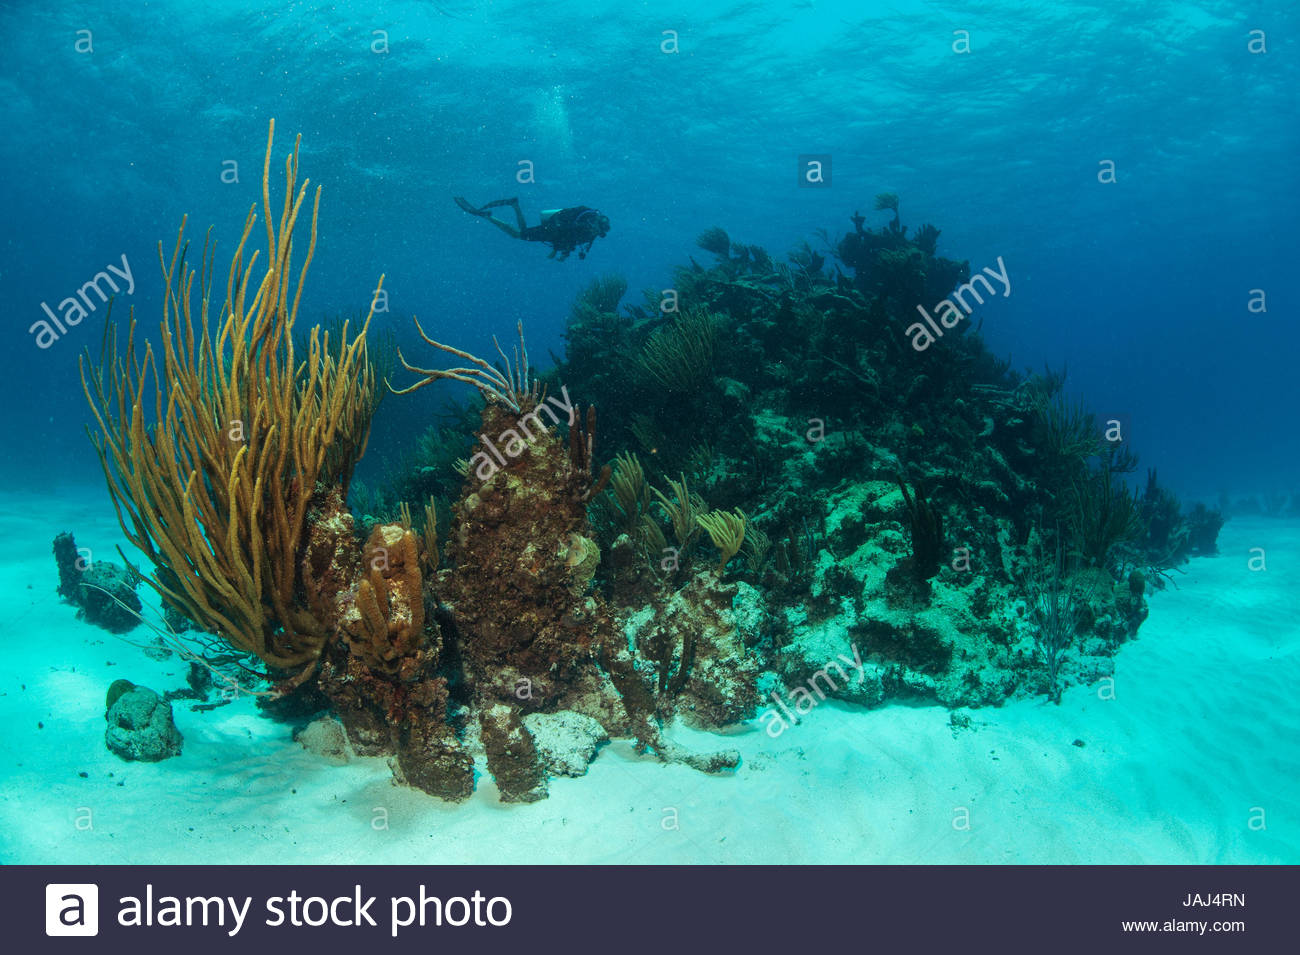 Corals in the protected waters of Buck Island National Monument. - Stock Image